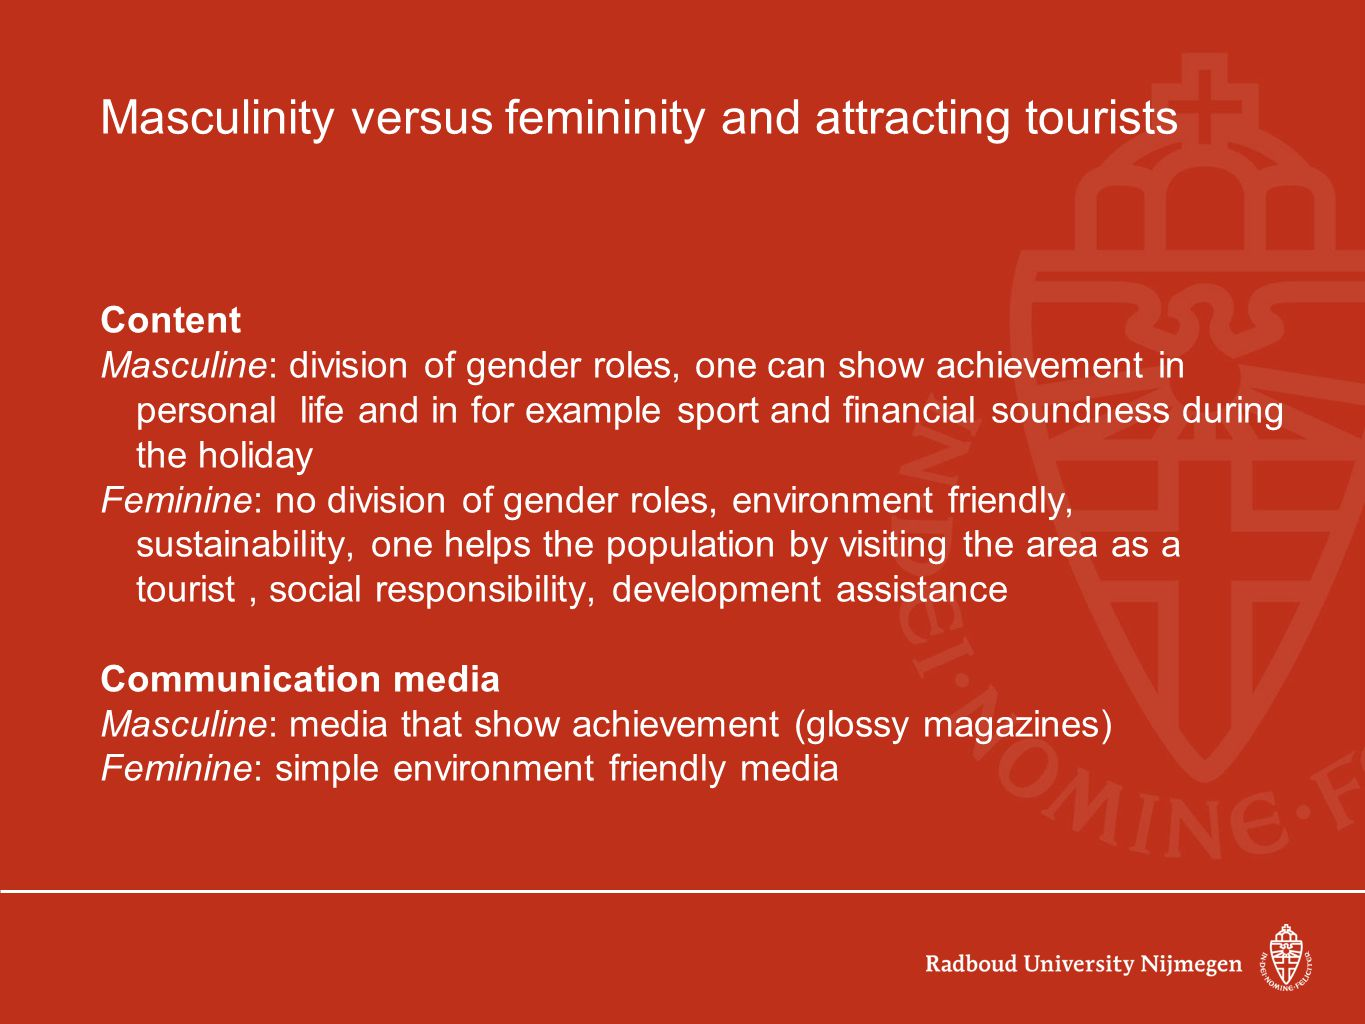 Masculinity versus femininity and attracting tourists